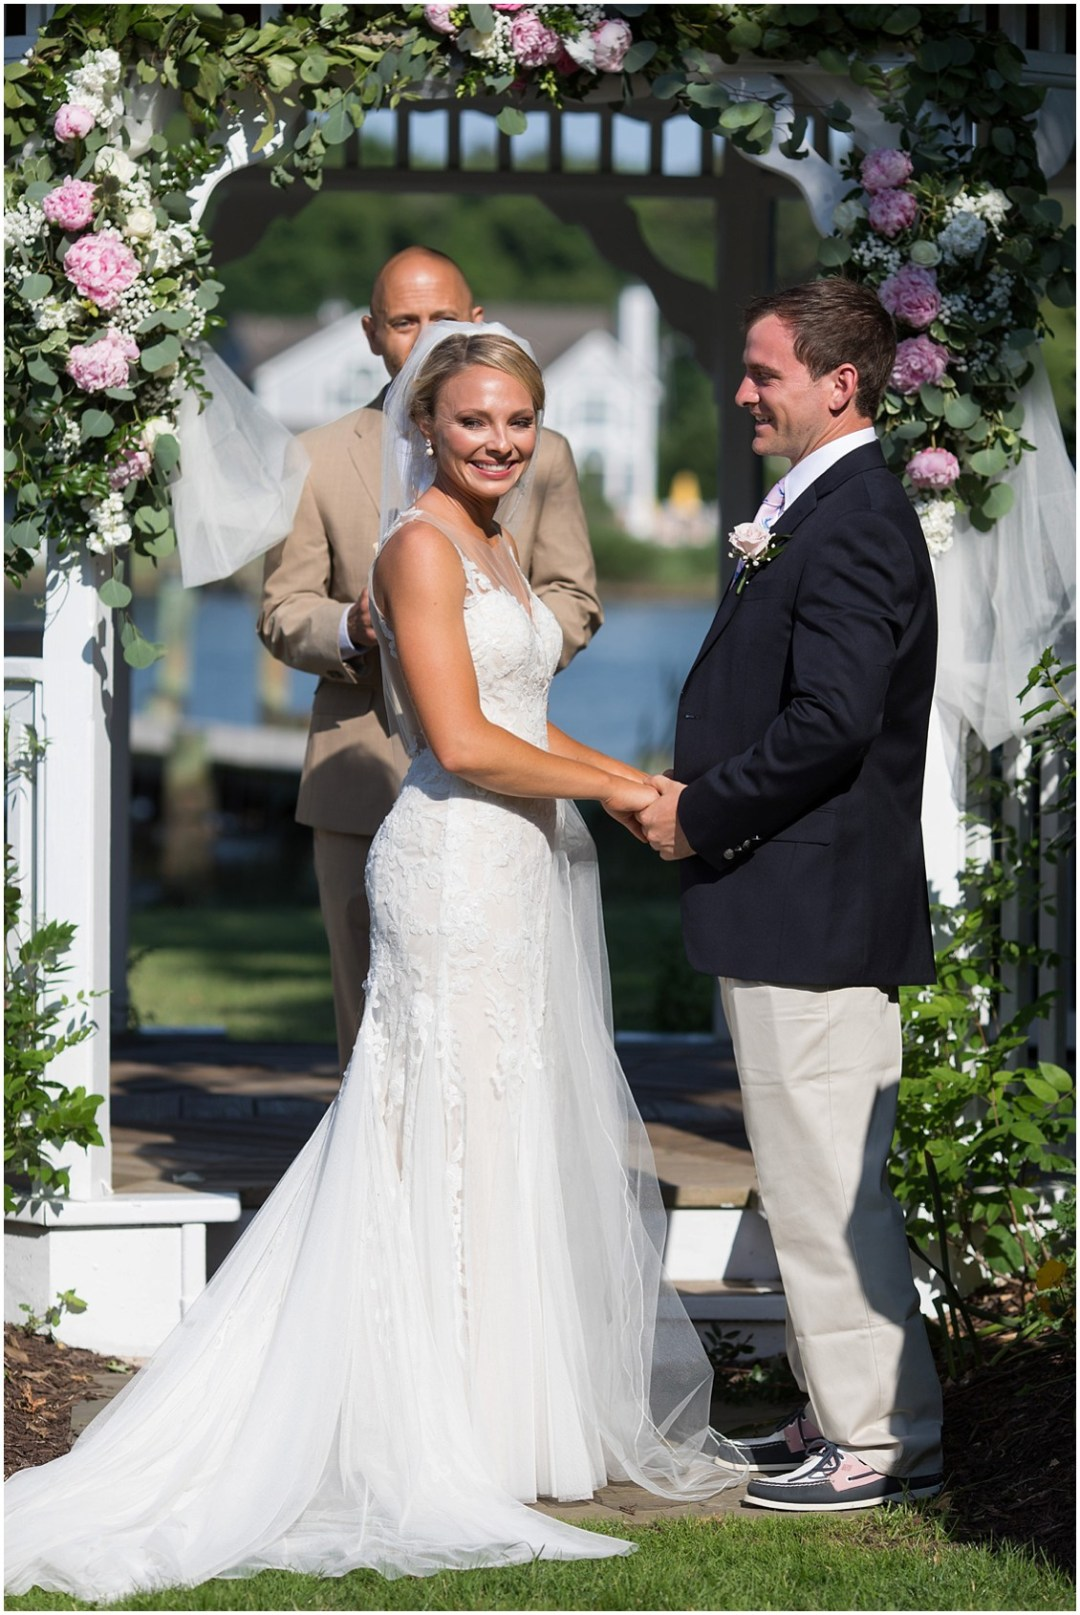 Bride and groom at the wedding altar, clasping hands. | My Eastern Shore Wedding |